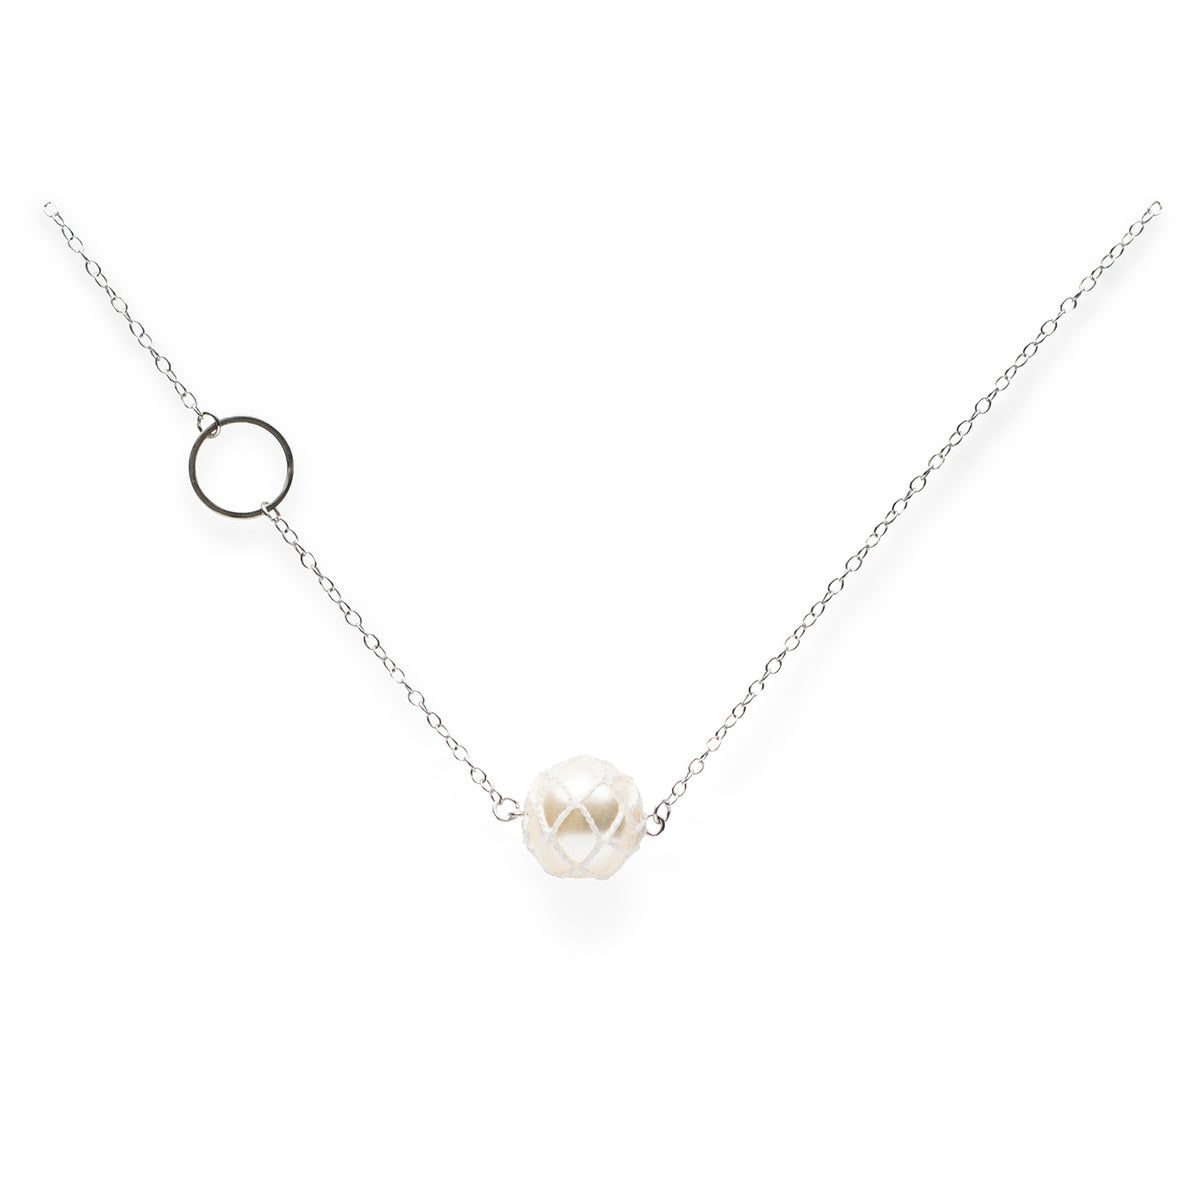 Luna, Crochet Pearl Long Necklace Silver